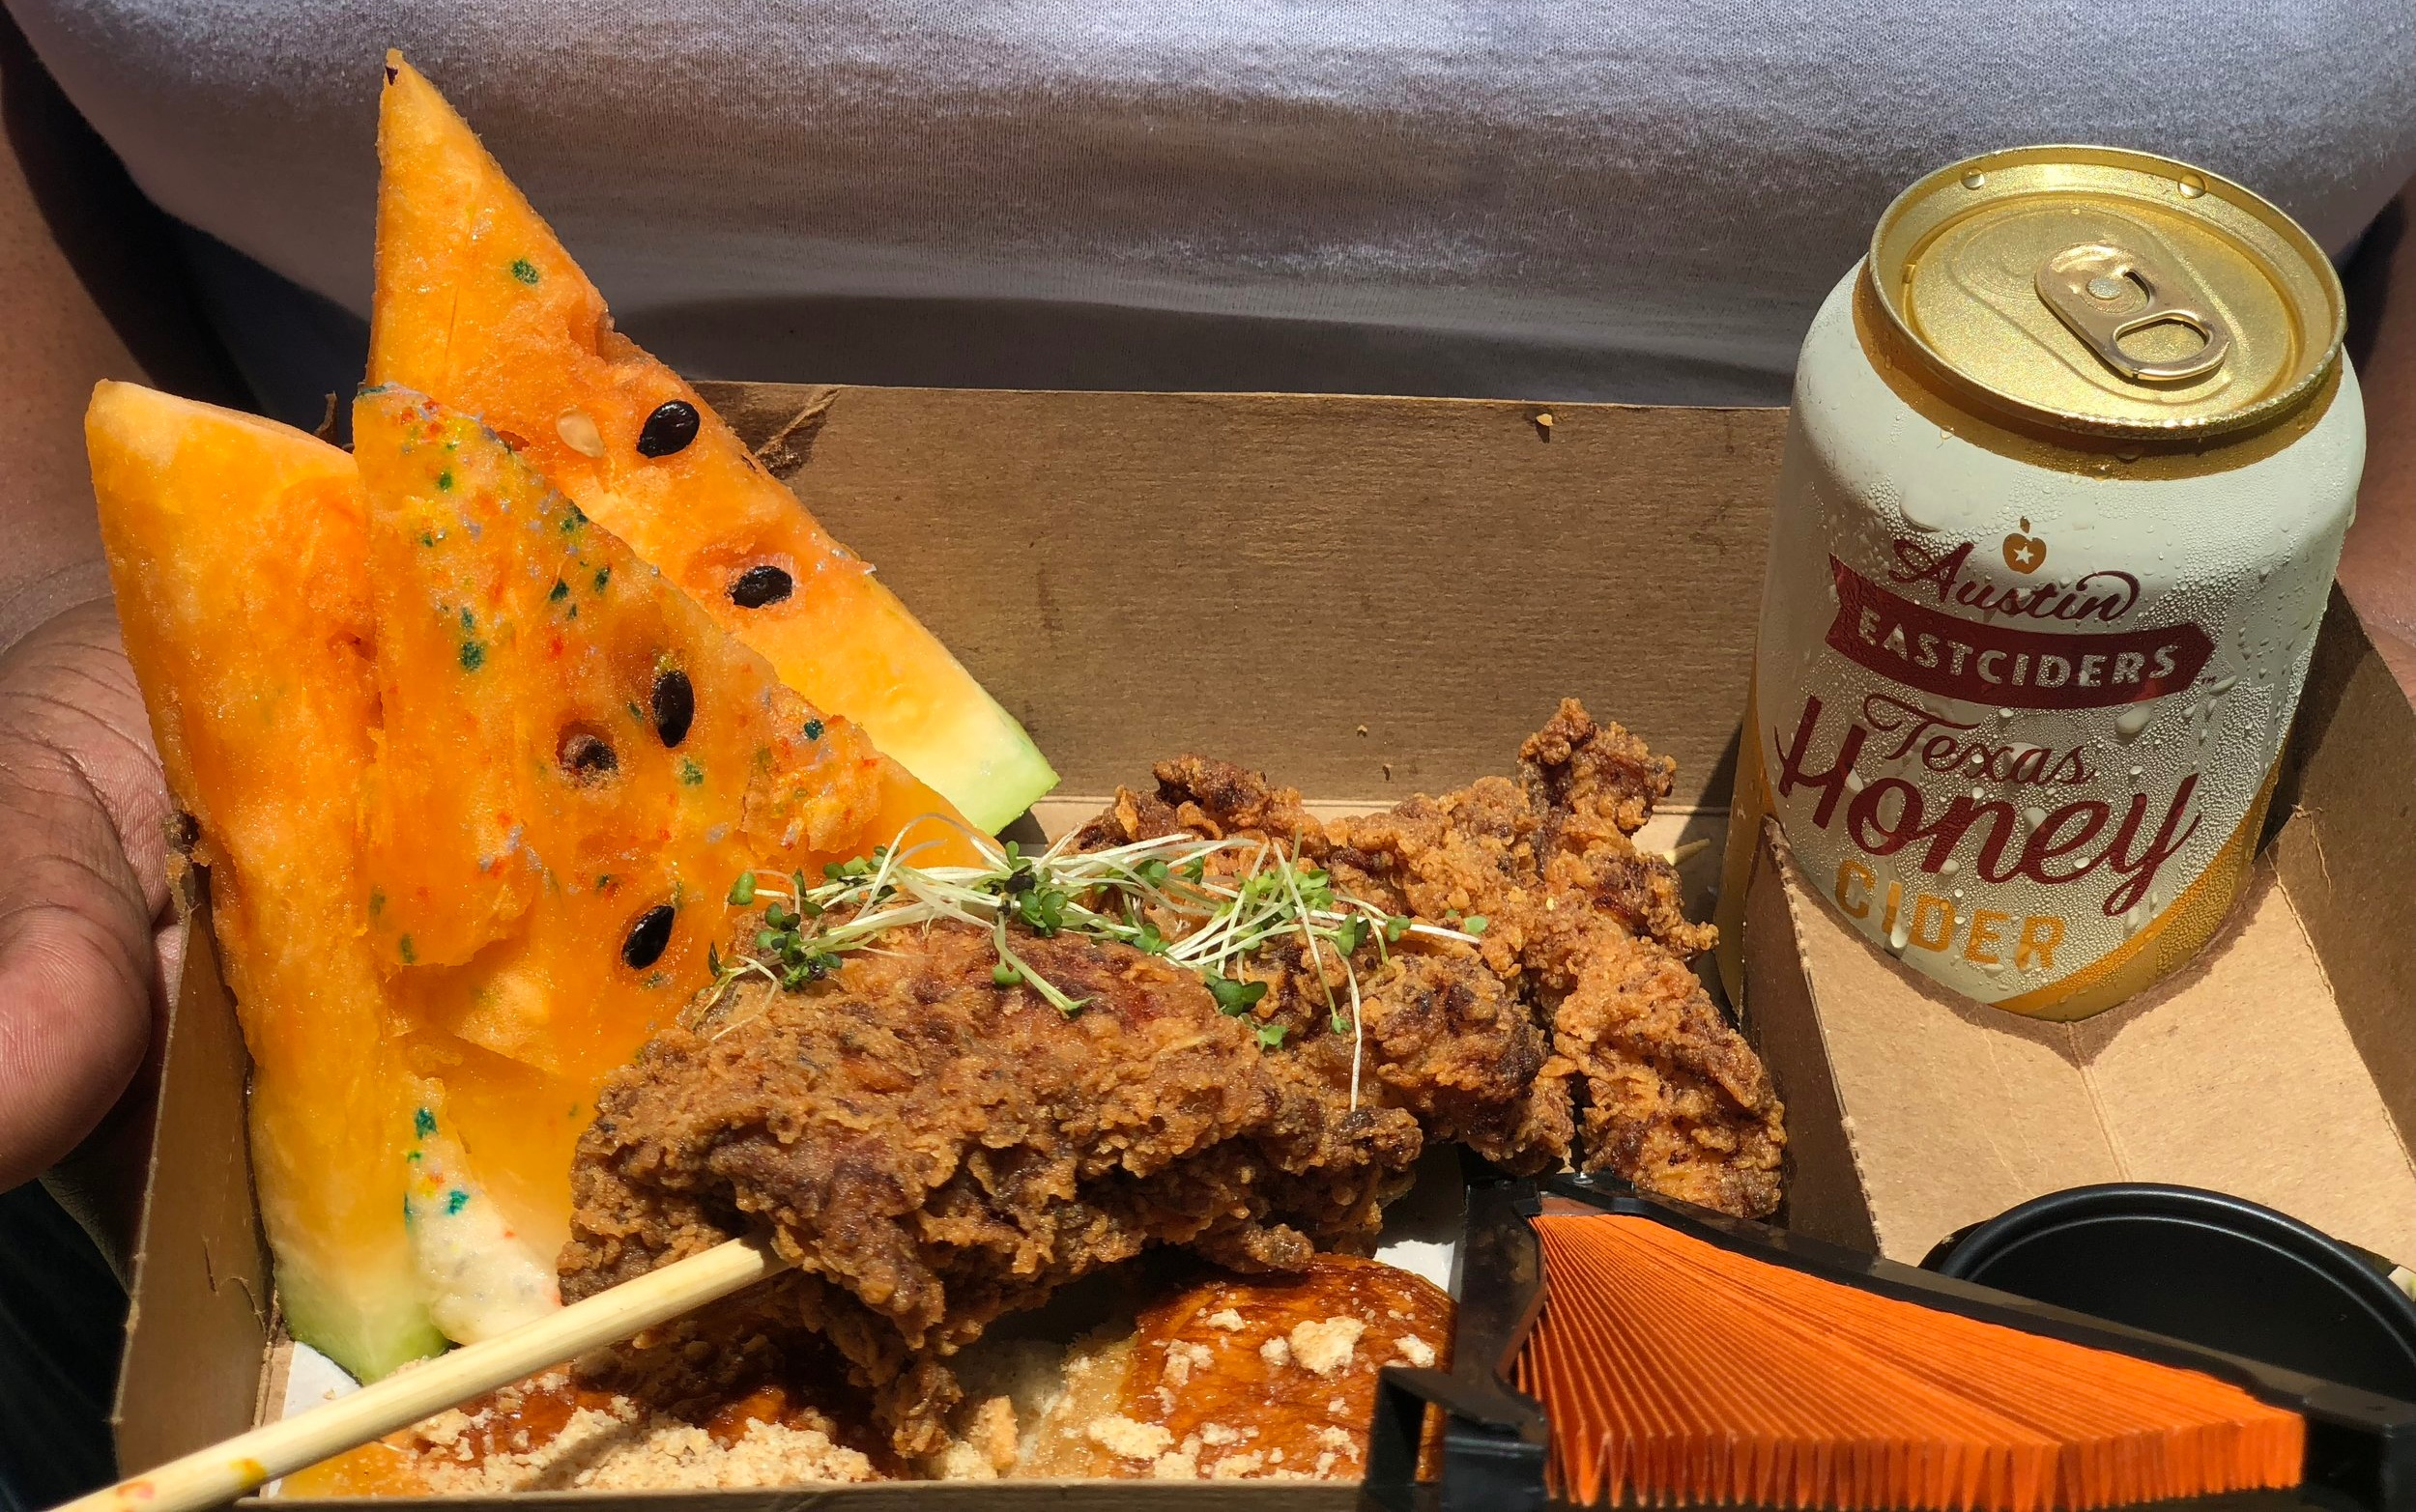 Guests were able to enjoy foods including Southern fried chicken, yellow watermelon, with Austin Eastciders Texas Honey Cider. Photo by Victoria Randle